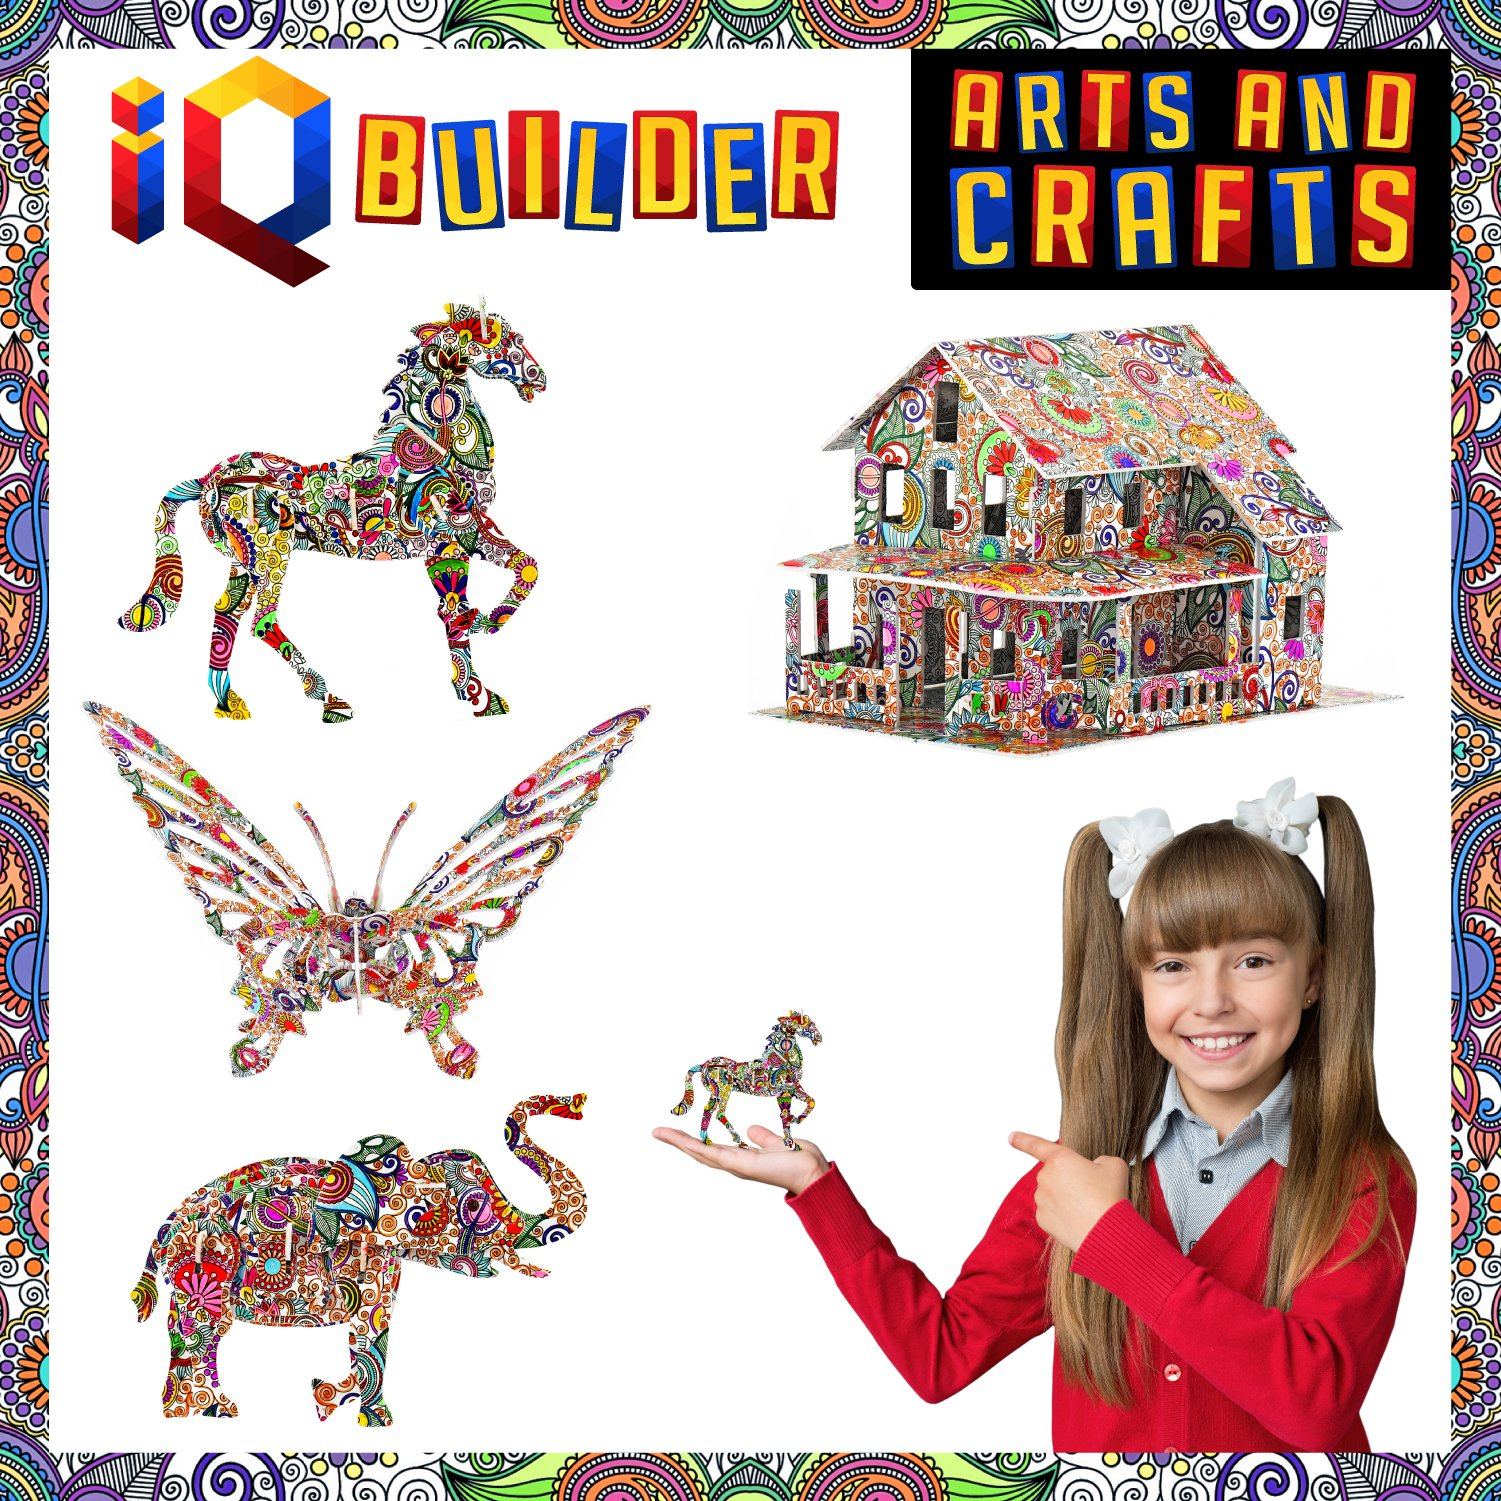 IQ BUILDER | ARTS AND CRAFTS FOR GIRLS AGE 7 8 9 10 11 12 YEAR OLD AND UP | 3D ART COLORING PAINTING ANIMAL PUZZLE SET | FUN CREATIVE DIY TOYS | FAMILY CRAFT KIT WITH SUPPLIES | BEST TOY GIFT FOR KIDS by IQ BUILDER